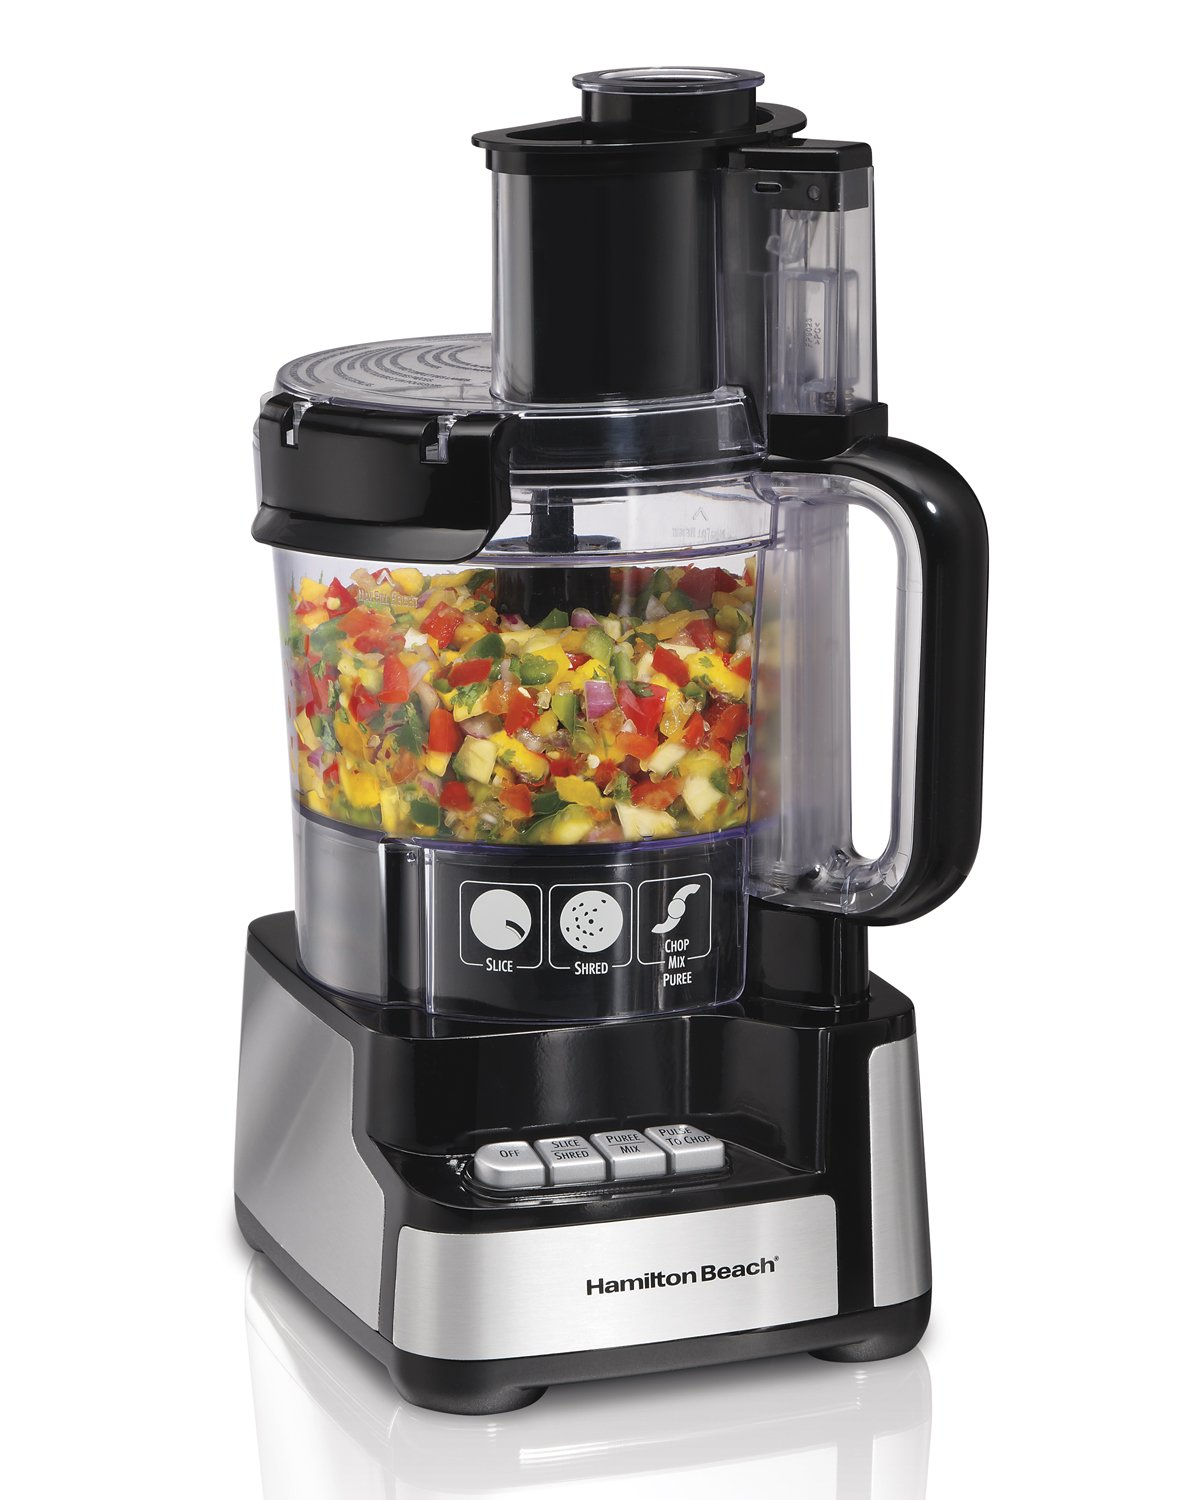 Best Food Processor 2021: The 5 Most Top-Rated And Best Selling Products 1